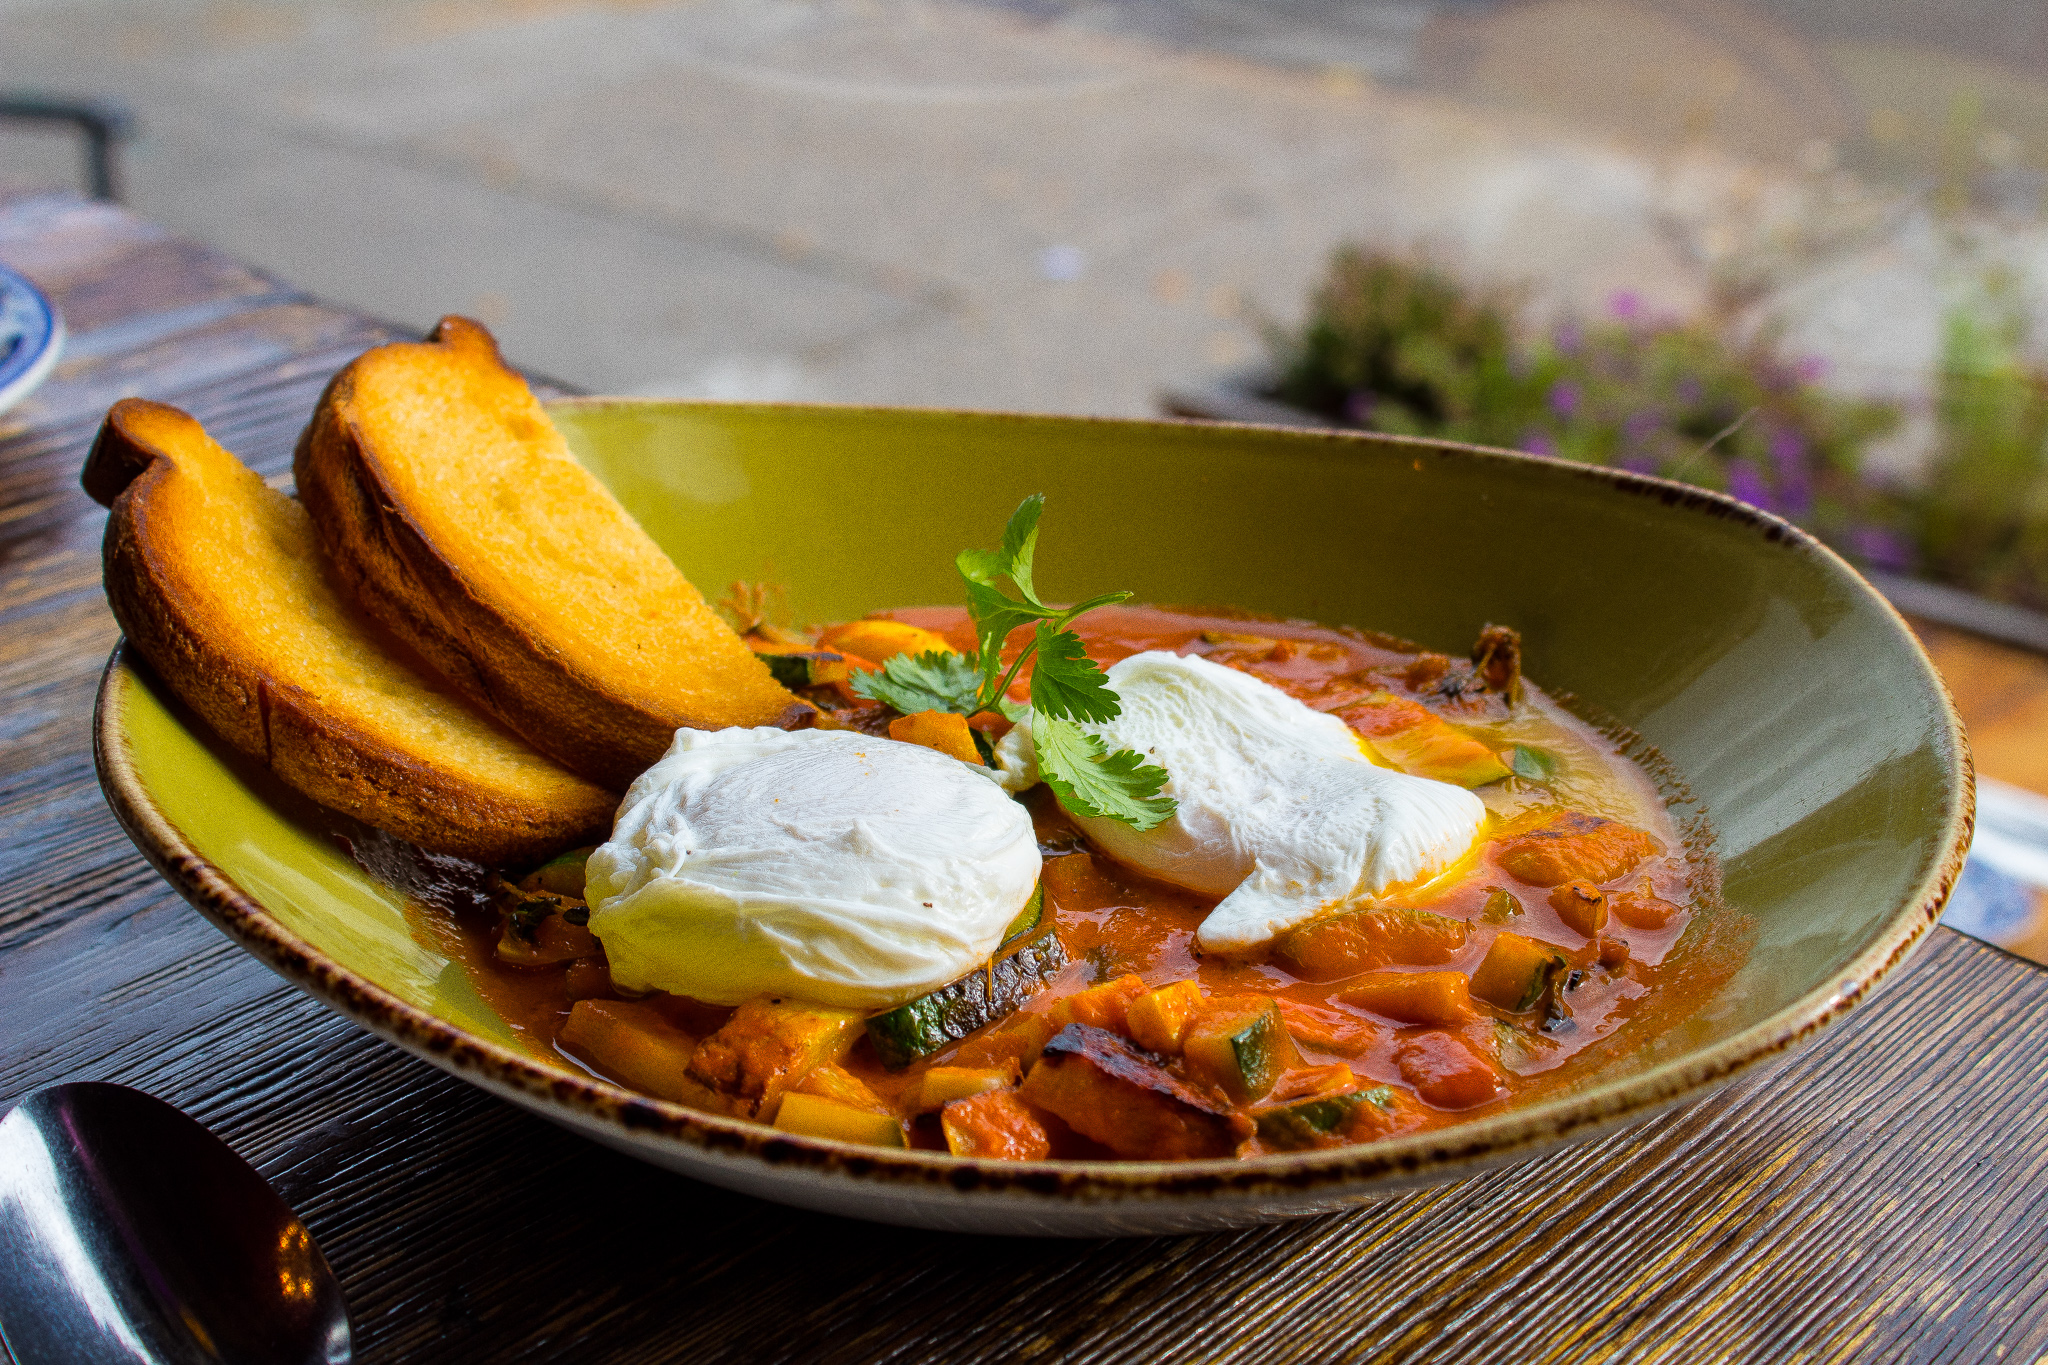 Calabacitas - Zucchini and yellow squash baked in roasted tomato sauce and served with toast and poached eggs